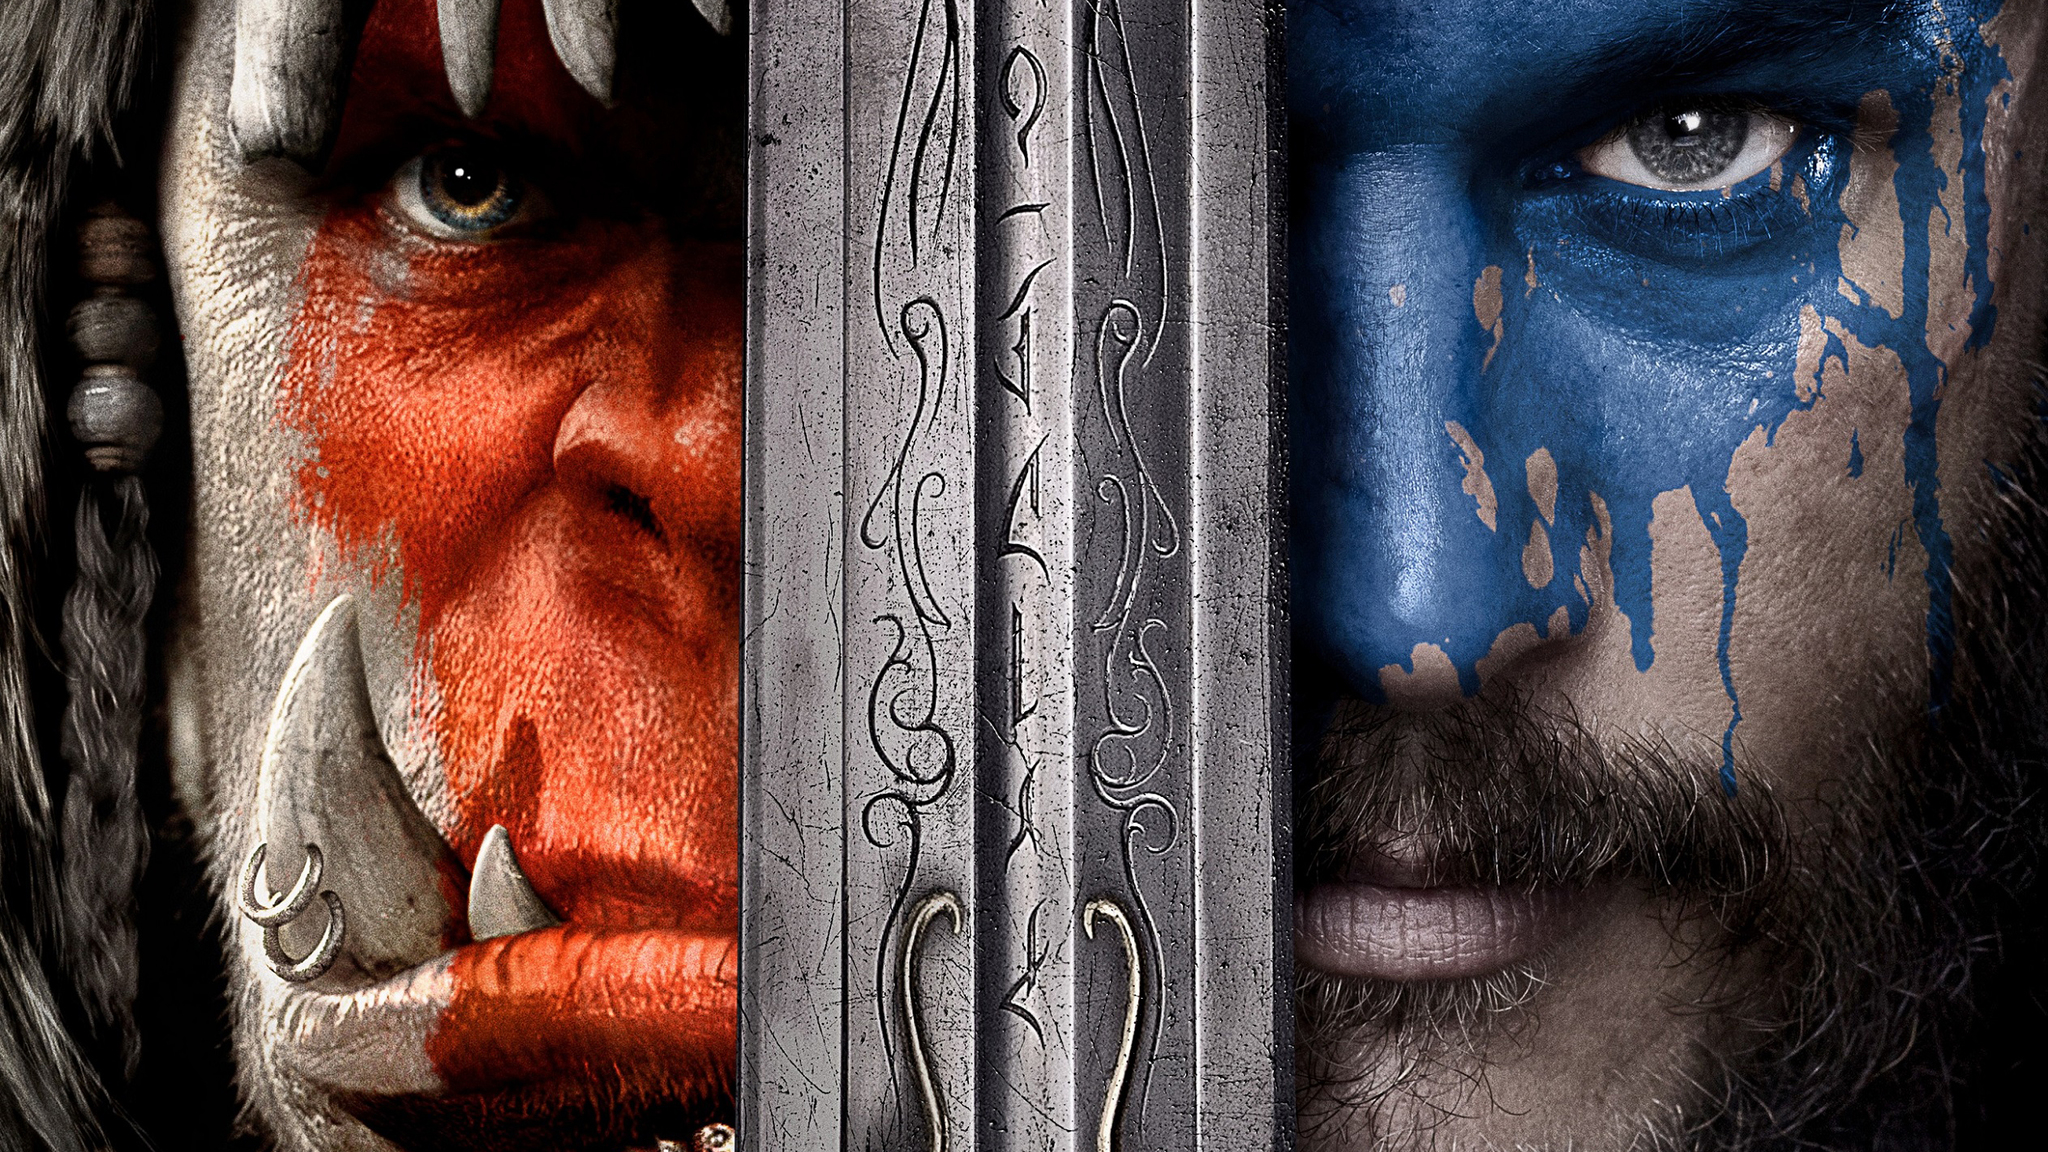 2048x1152 2016 warcraft movie hd 2048x1152 resolution hd 4k